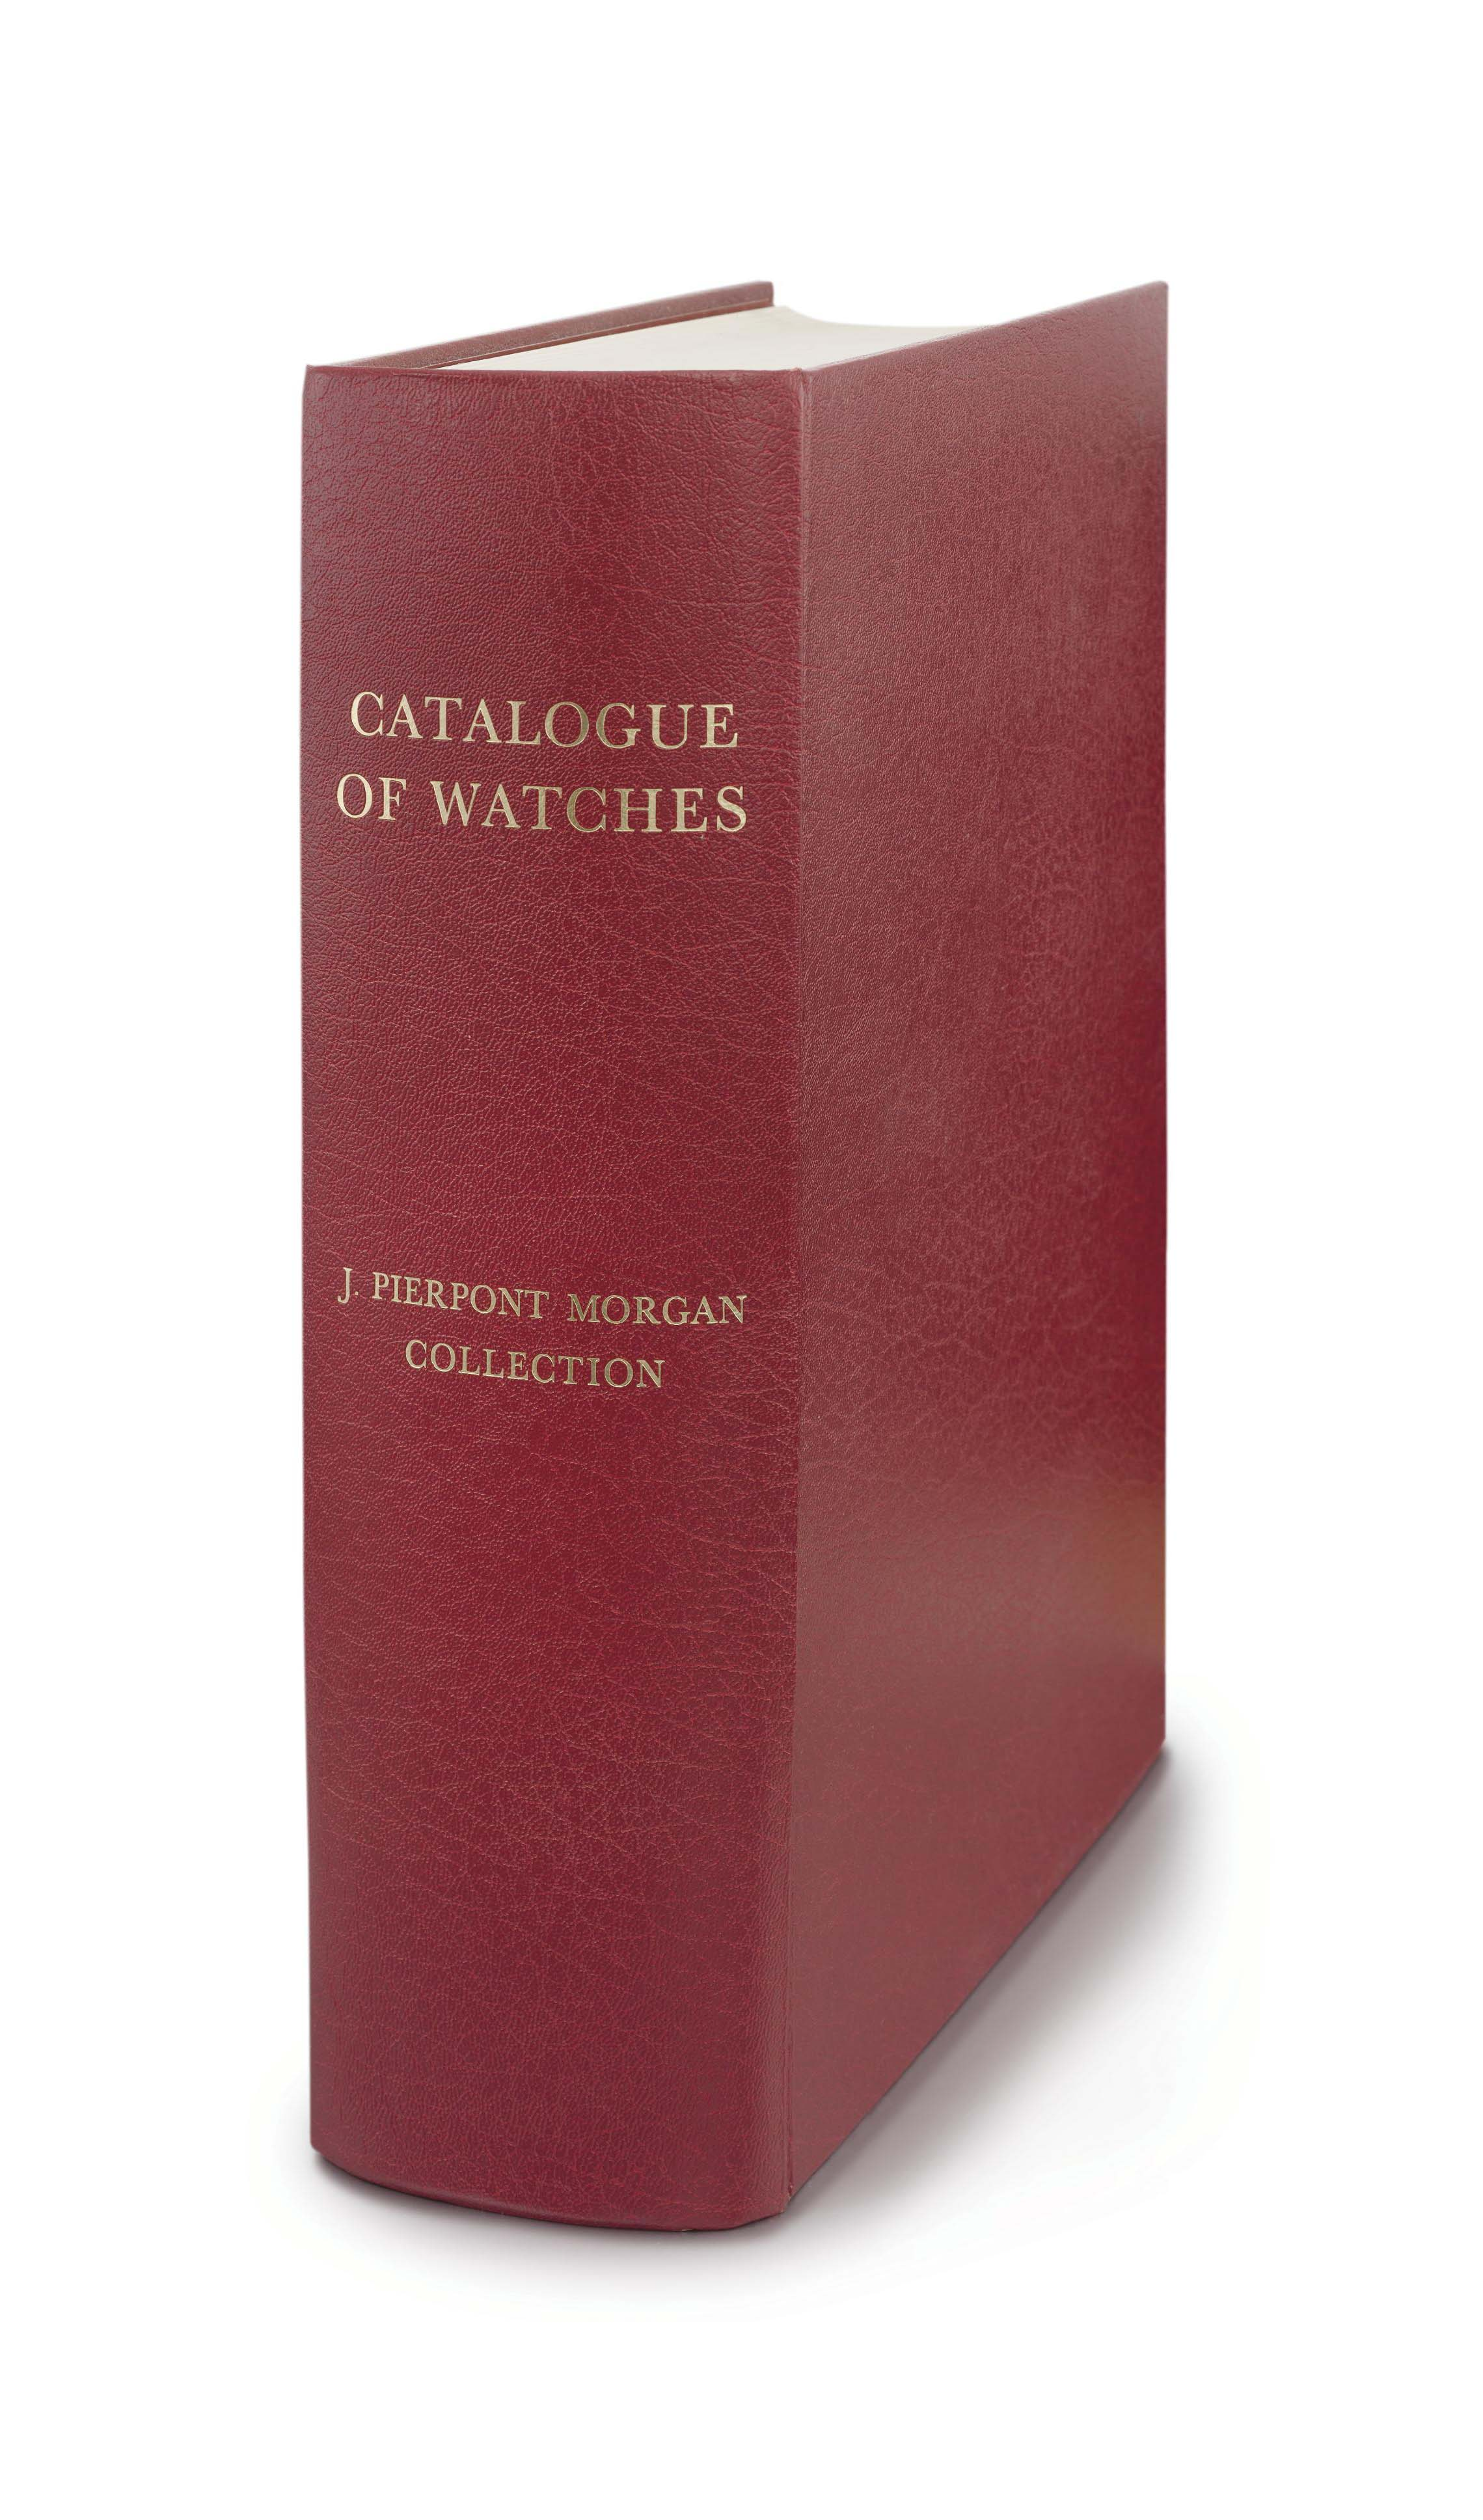 Catalogue of the Collection of the Watches - The Property of J. Pierpont Morgan